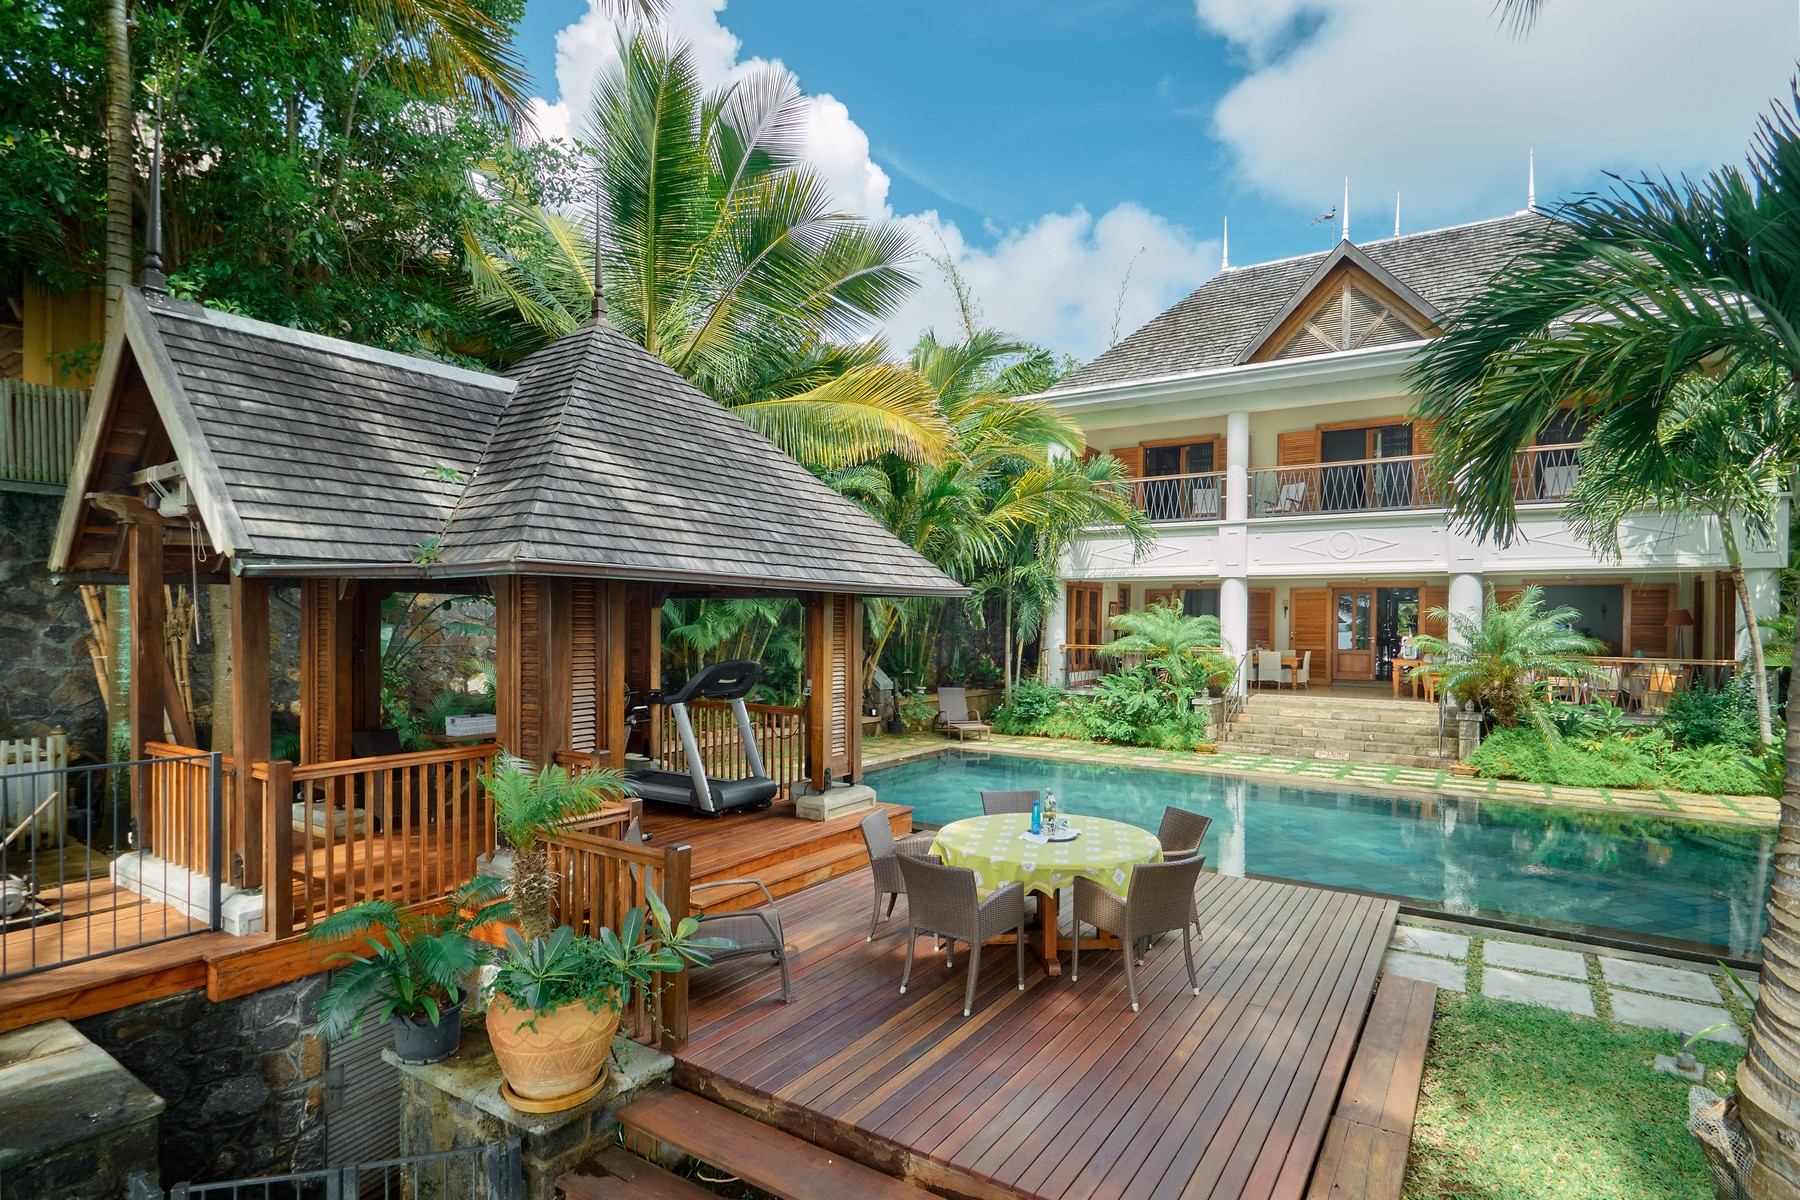 Single Family Home for Sale at Luxury Family Waterfront Villa in Grand Baie Grand Baie, Riviere Du Rempart Mauritius